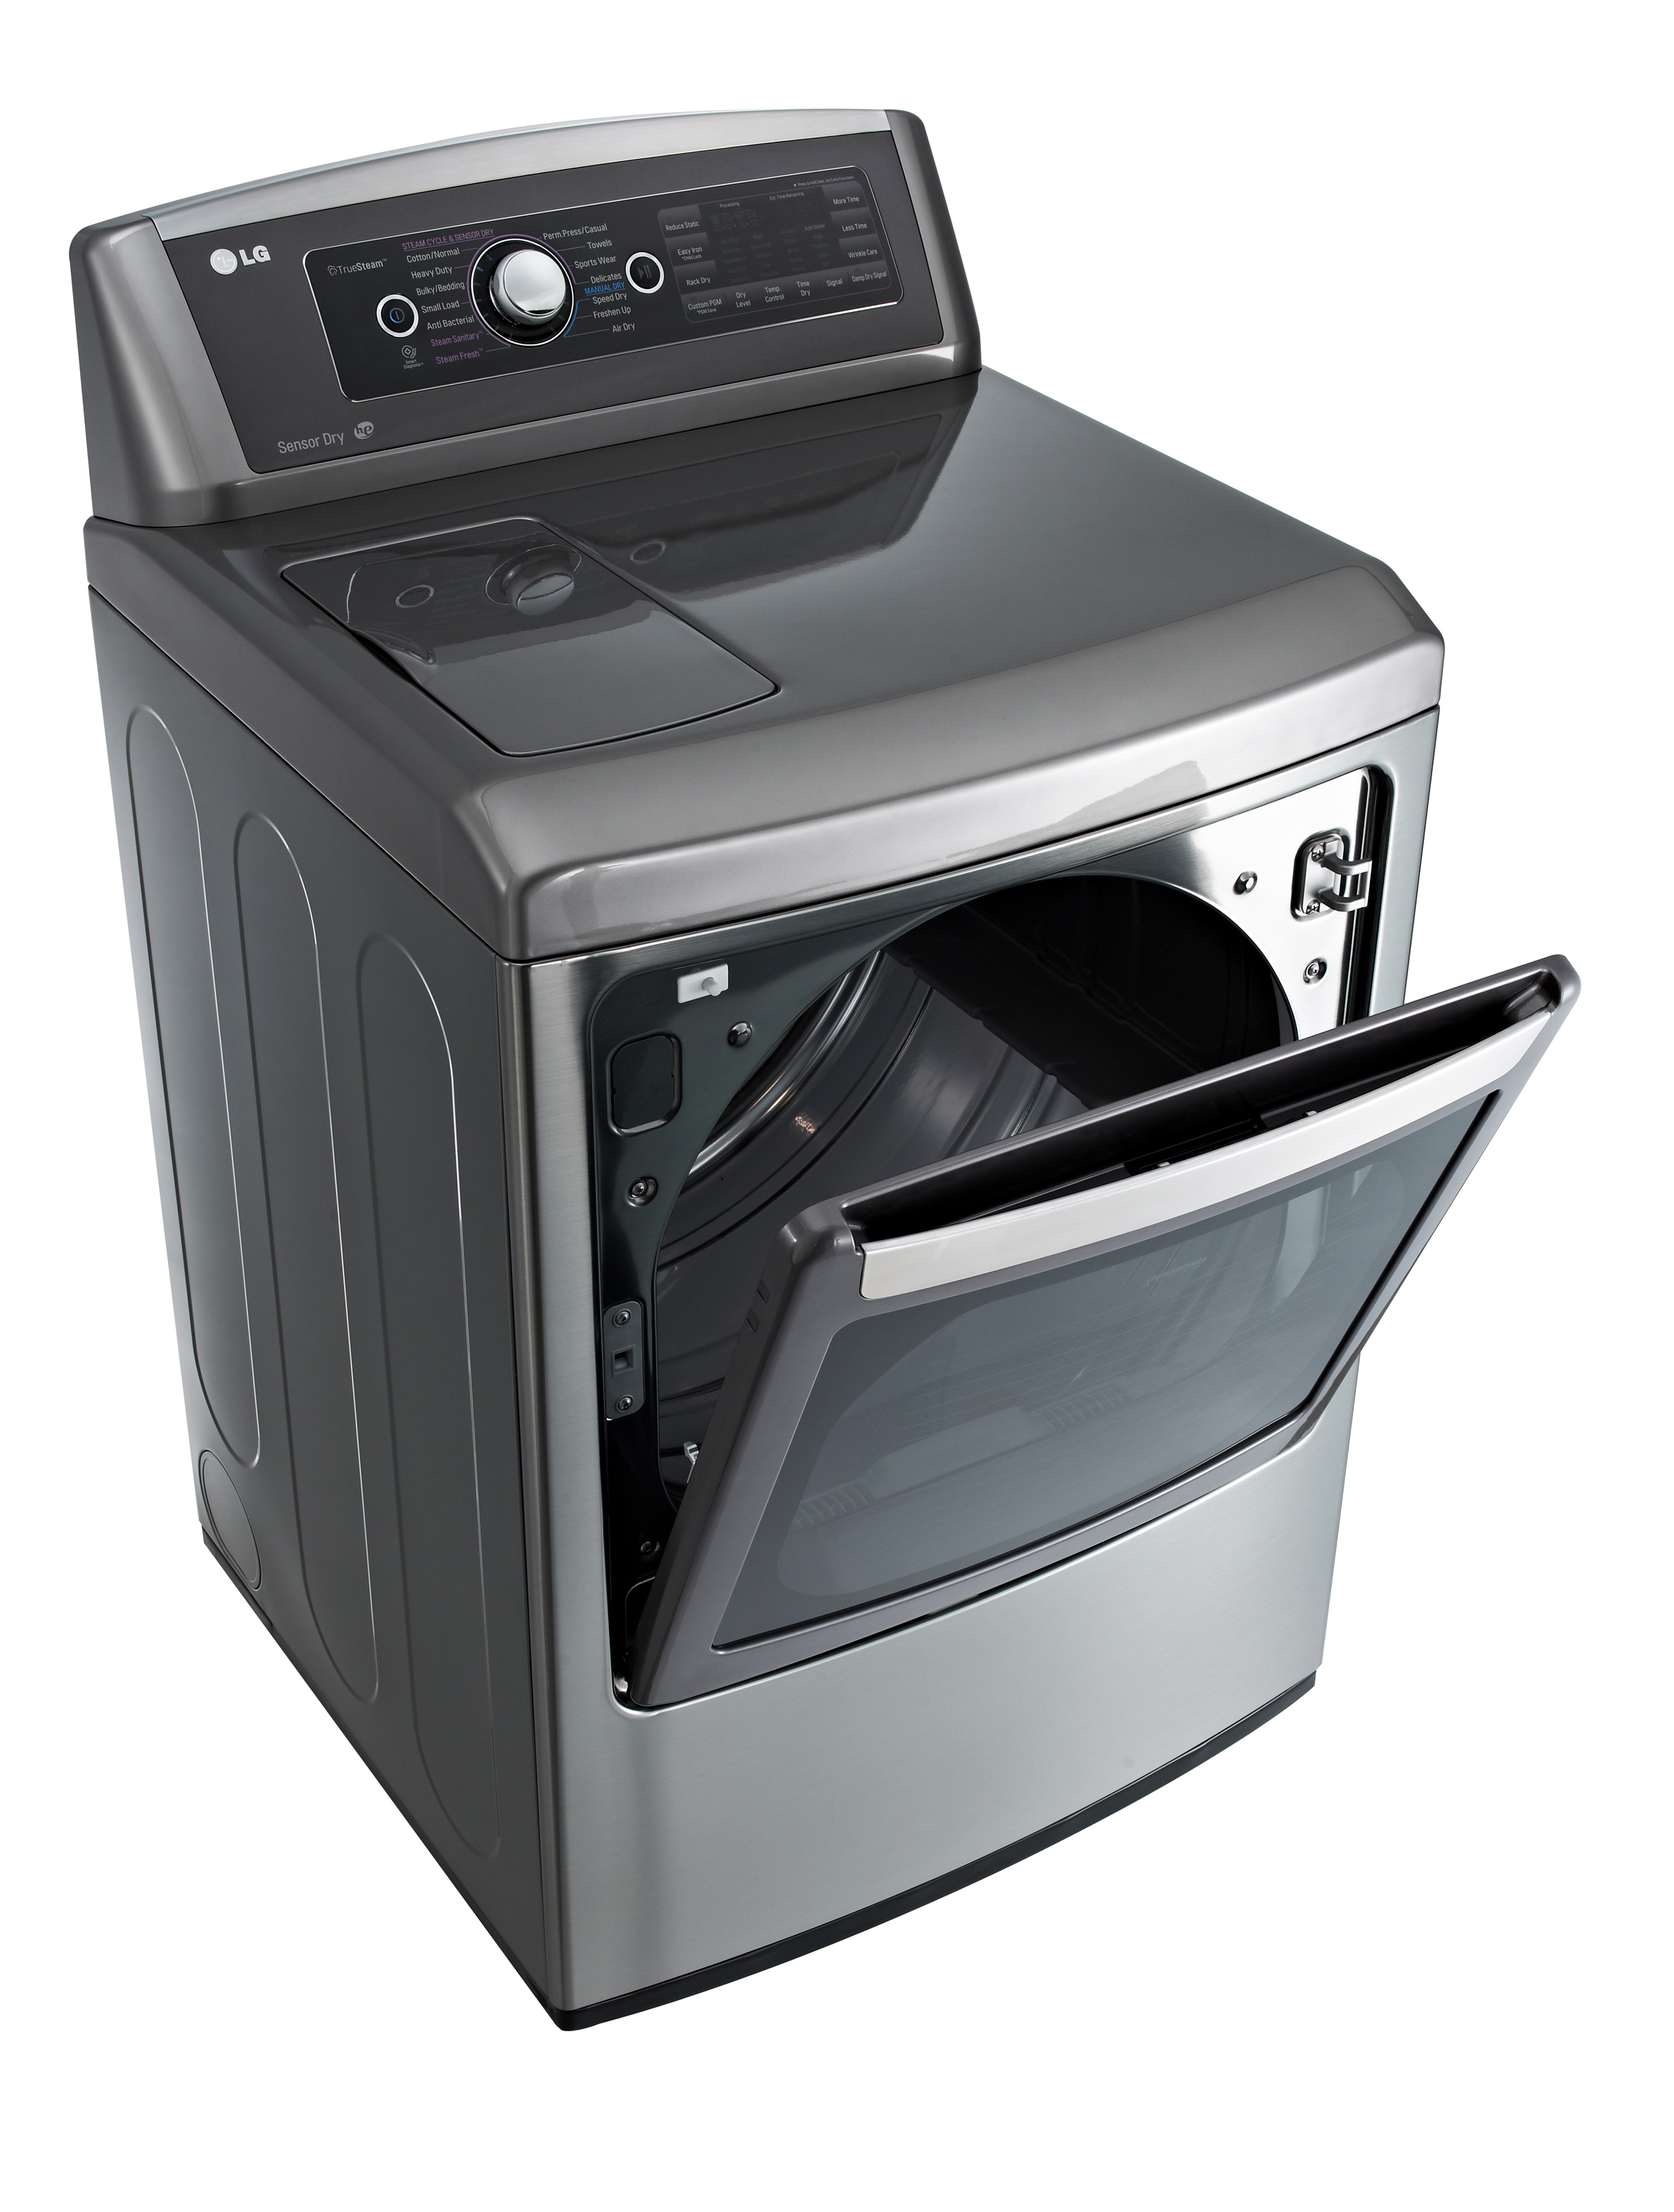 LG front-load washing machine with door opened from the top downwards